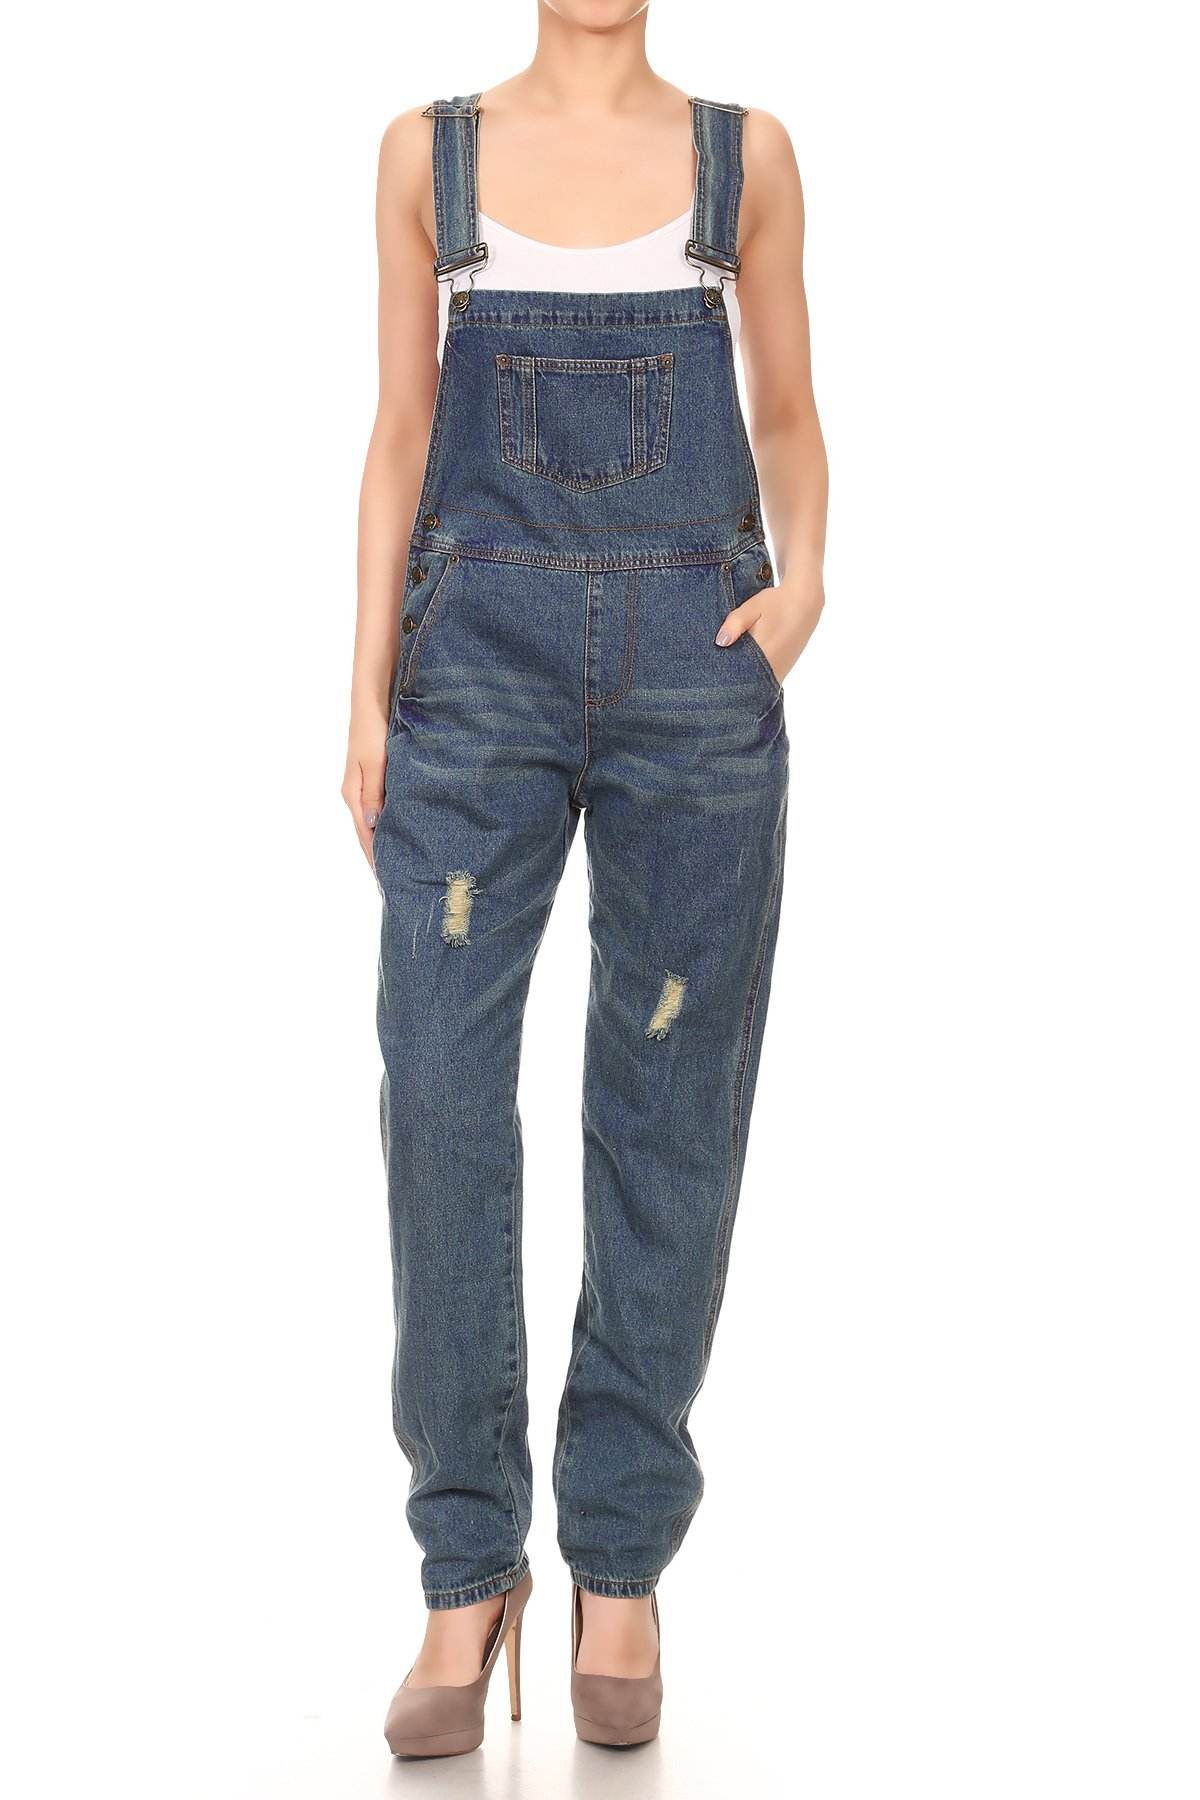 Anna-Kaci Womens Blue Denim Distressed Raw Scratch Style Tapered Leg Overalls Small Blue